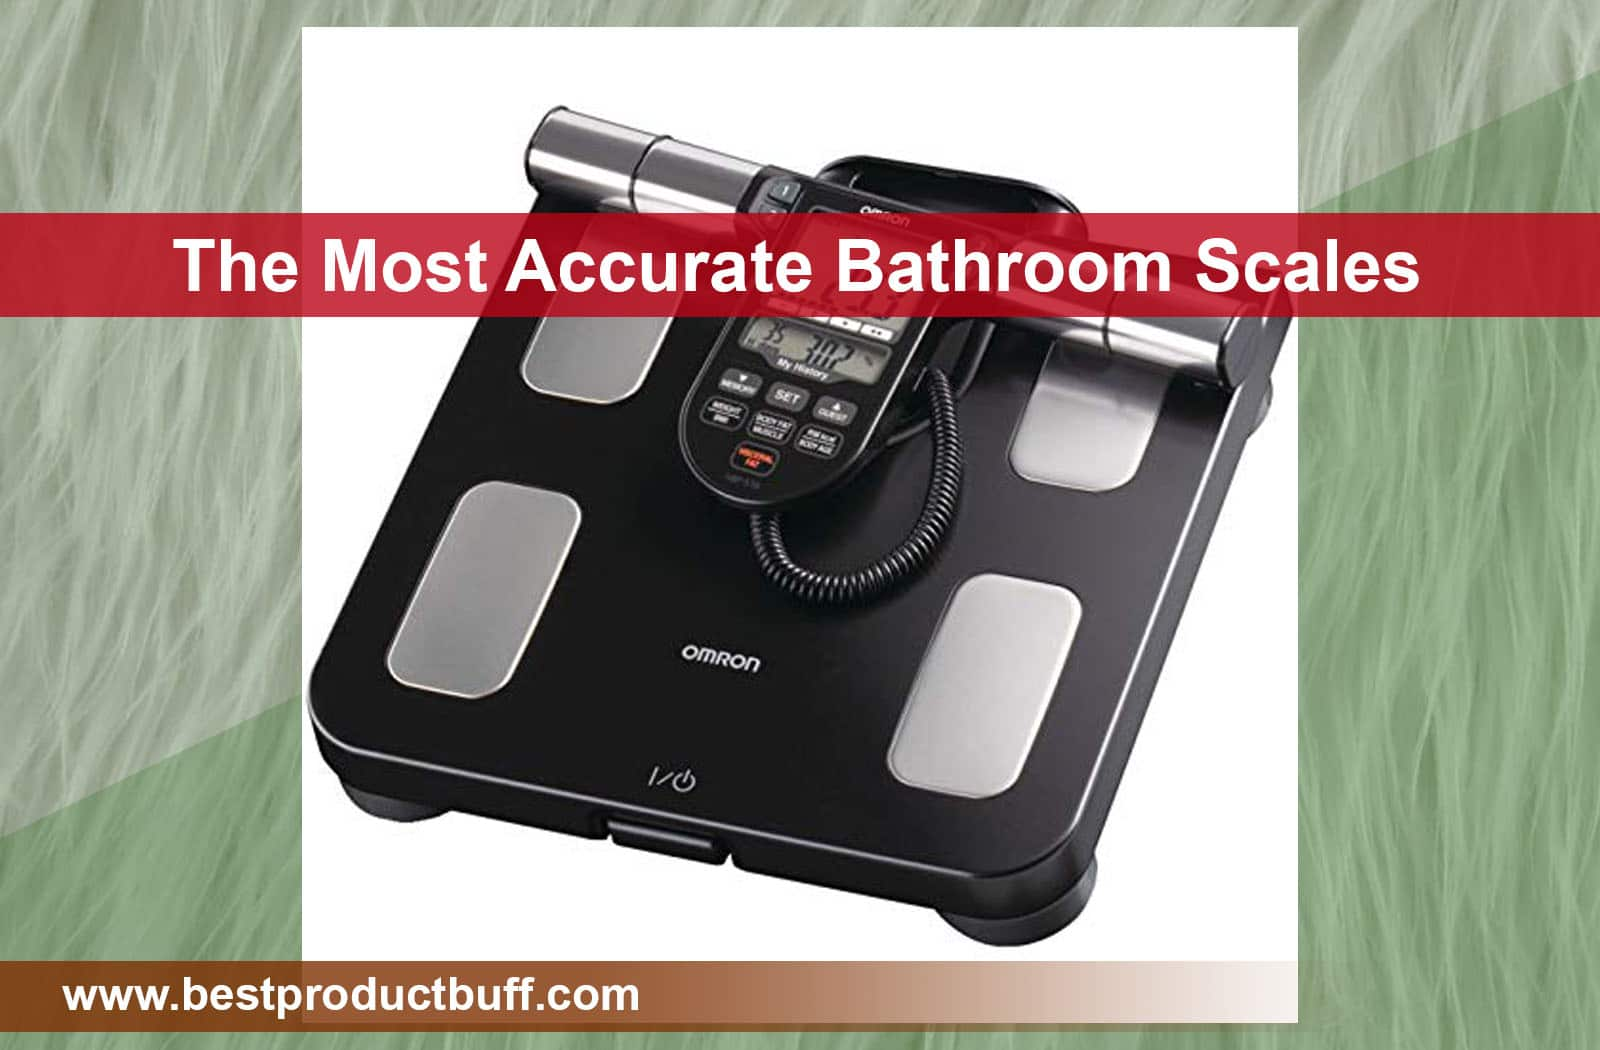 Top 5 The Most Accurate Bathroom Scales 2020 Review Best Product Buff